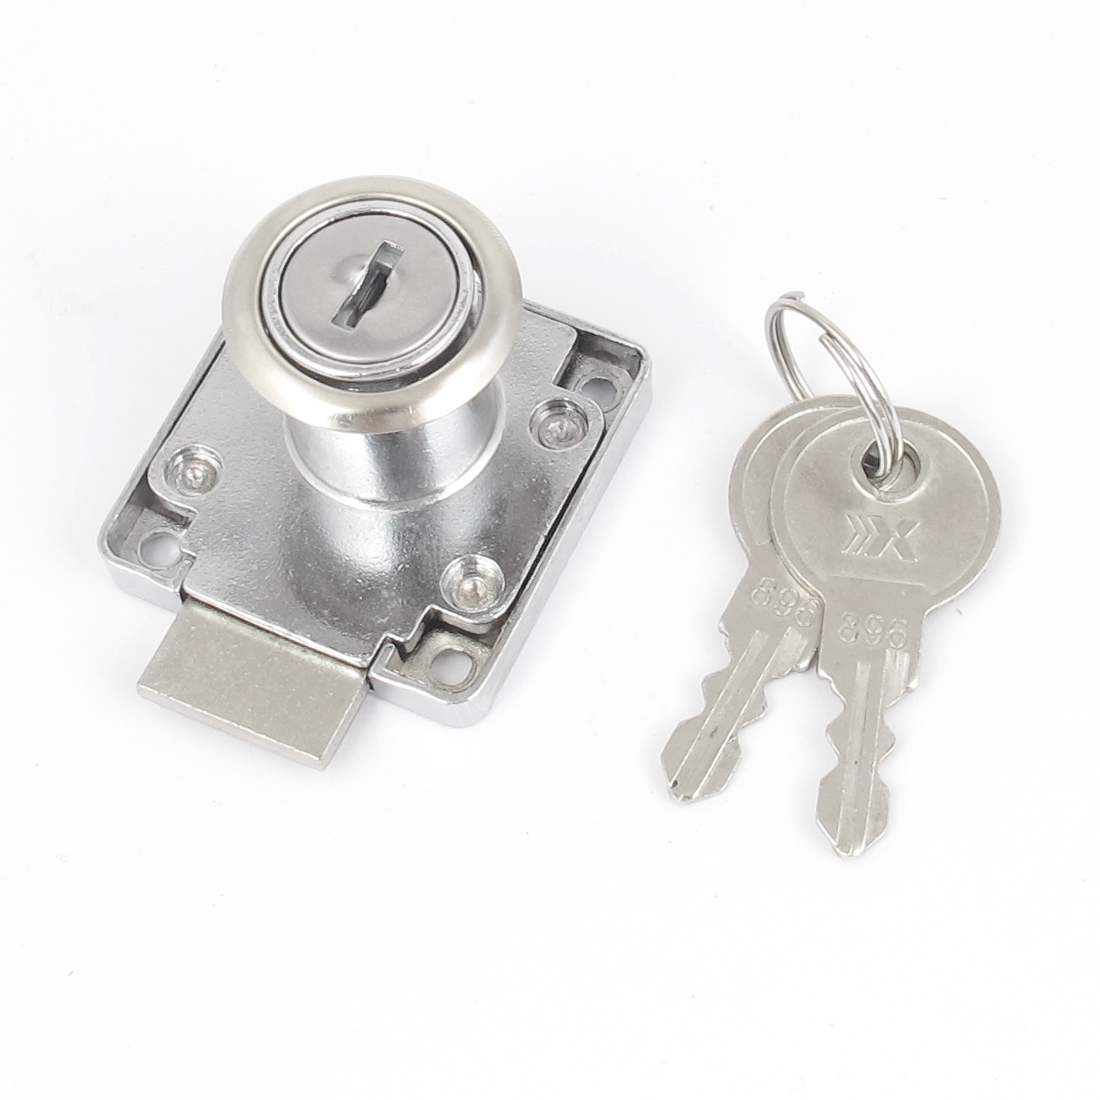 Wardrobe Mailbox Drawer Safe Tubular Cylinder Cabinet Lock and Key 19x22mm